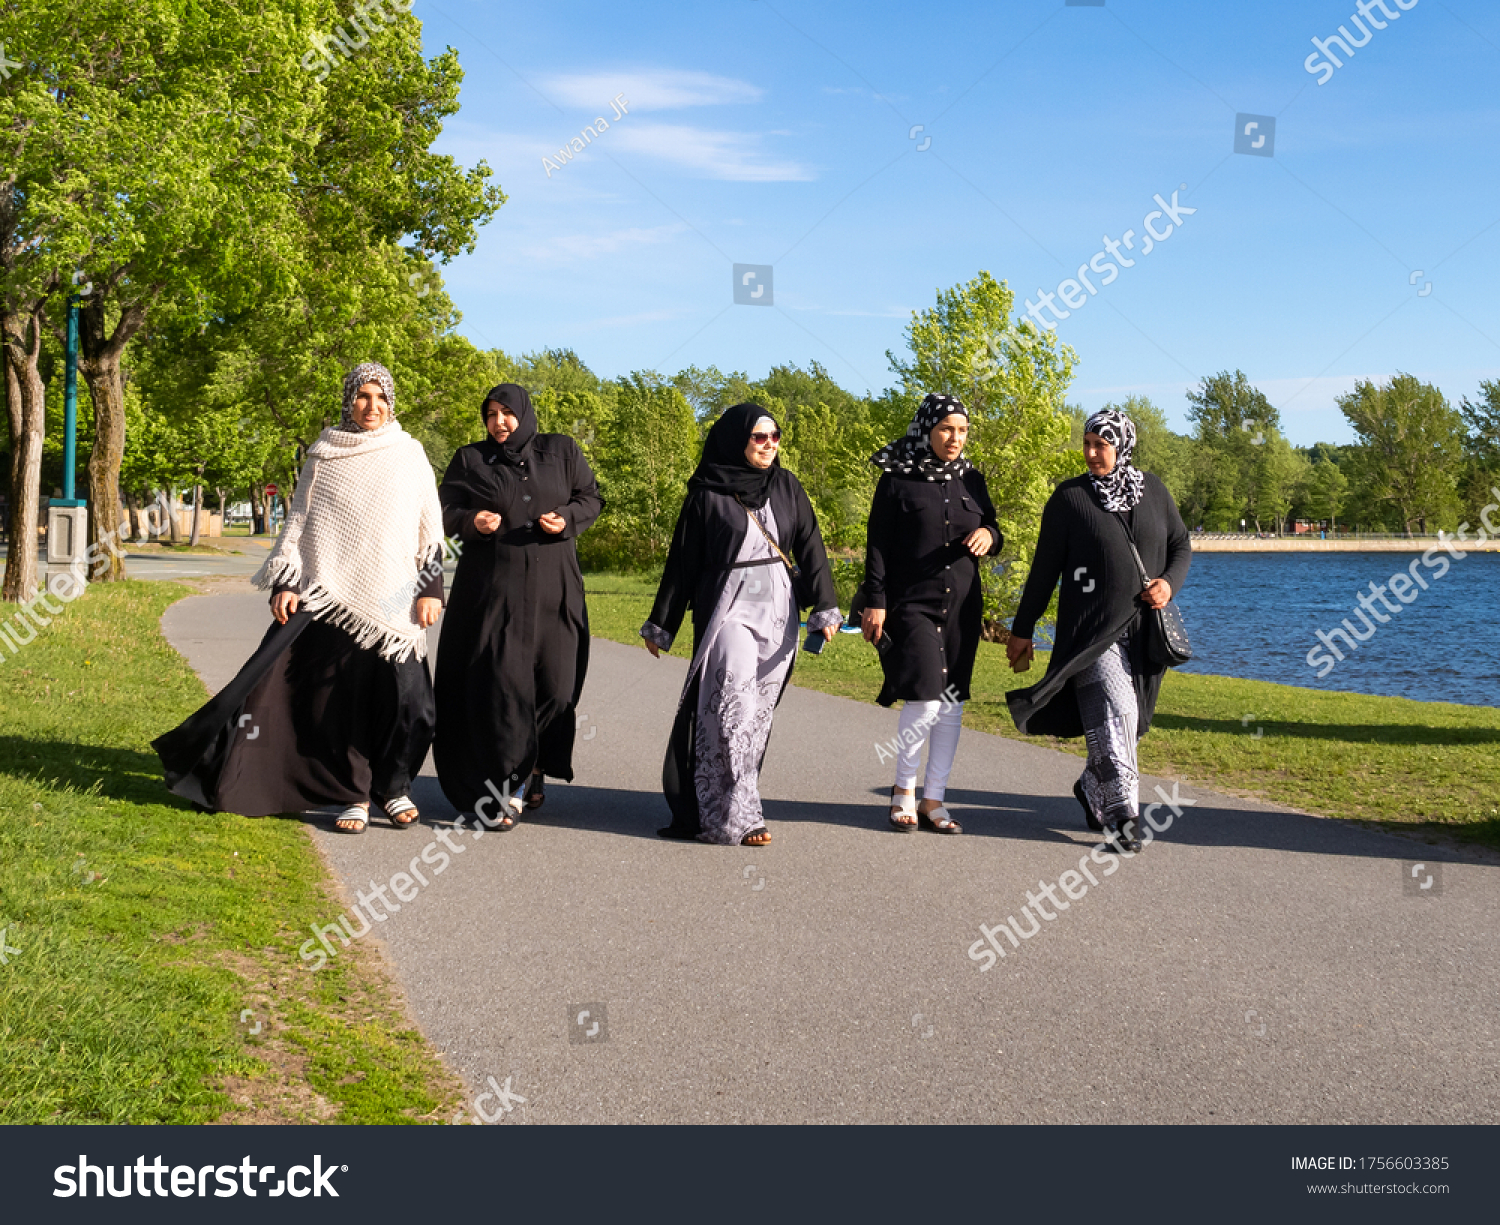 stock-photo-magog-canada-june-group-of-m